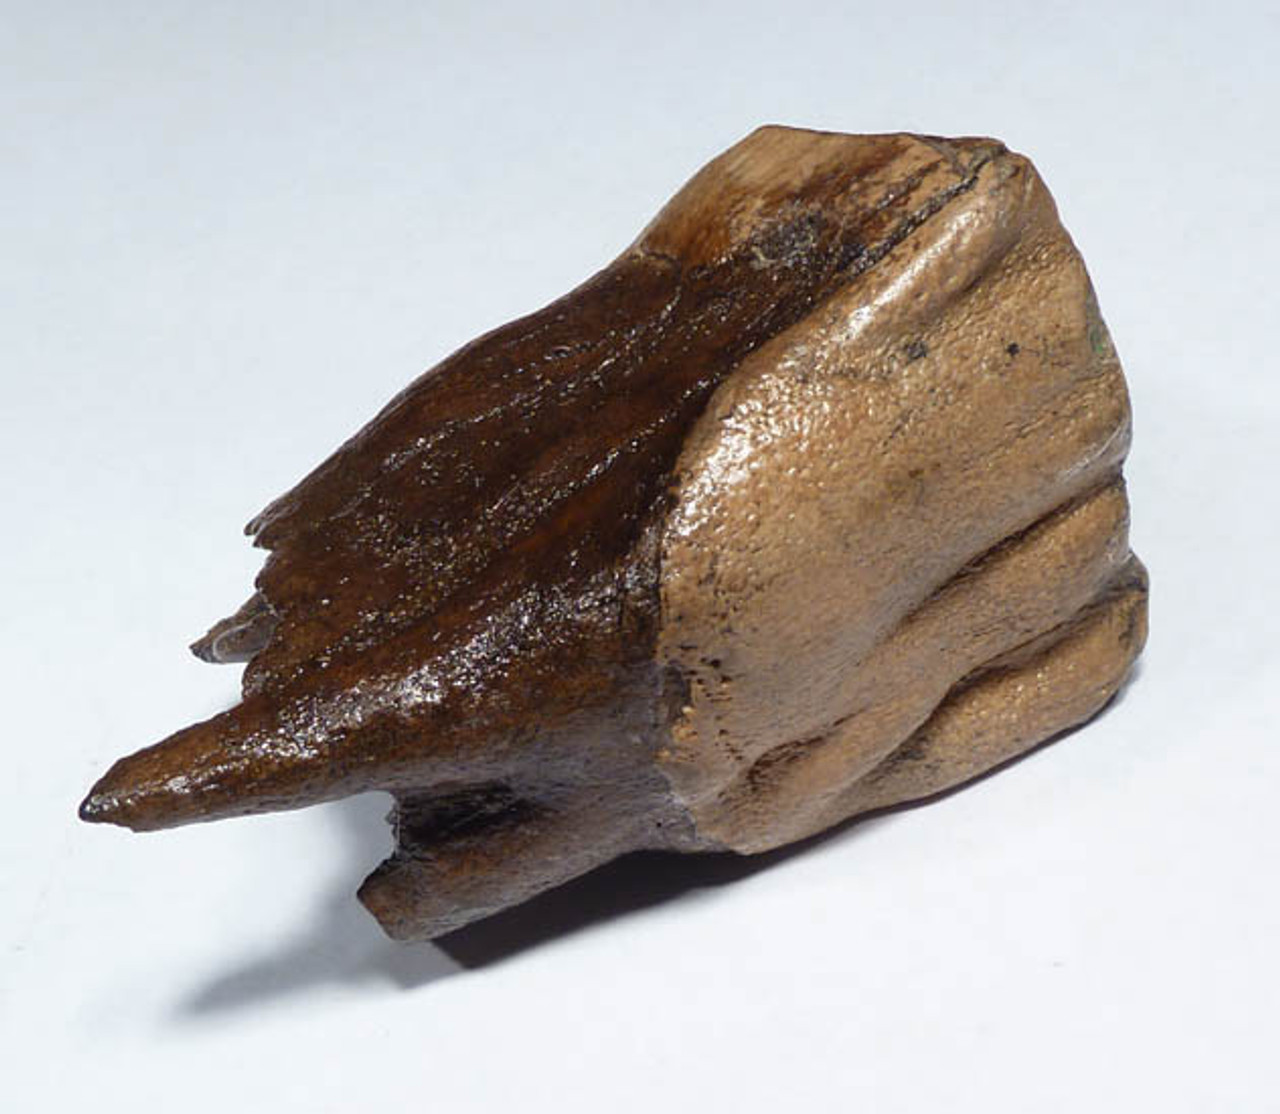 LM12-059  - FOSSIL GOLD AND BROWN  FINEST GRADE WOOLLY RHINOCEROS UPPER MOLAR TOOTH WITH INTACT ROOT